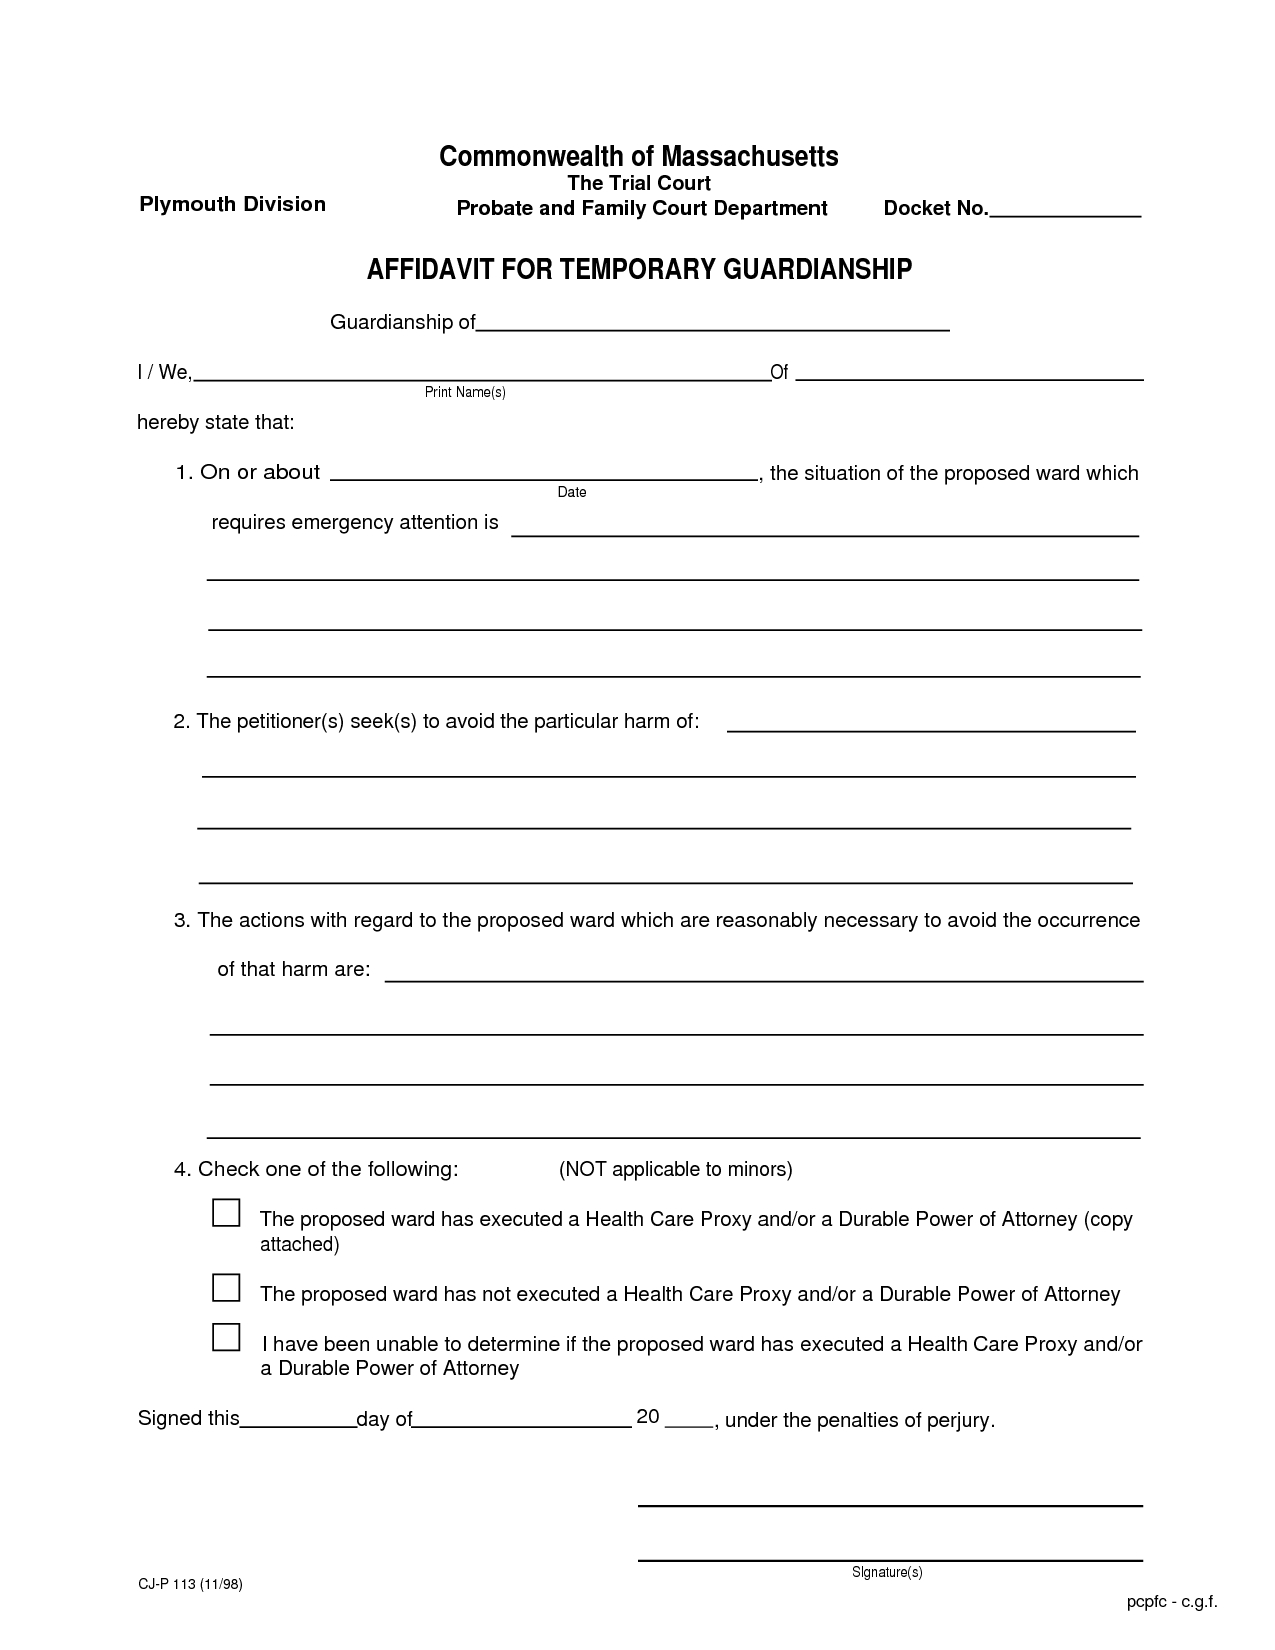 Temporary Guardianship Letter Template - How to Write A Letter for Guardianship Letter format formal